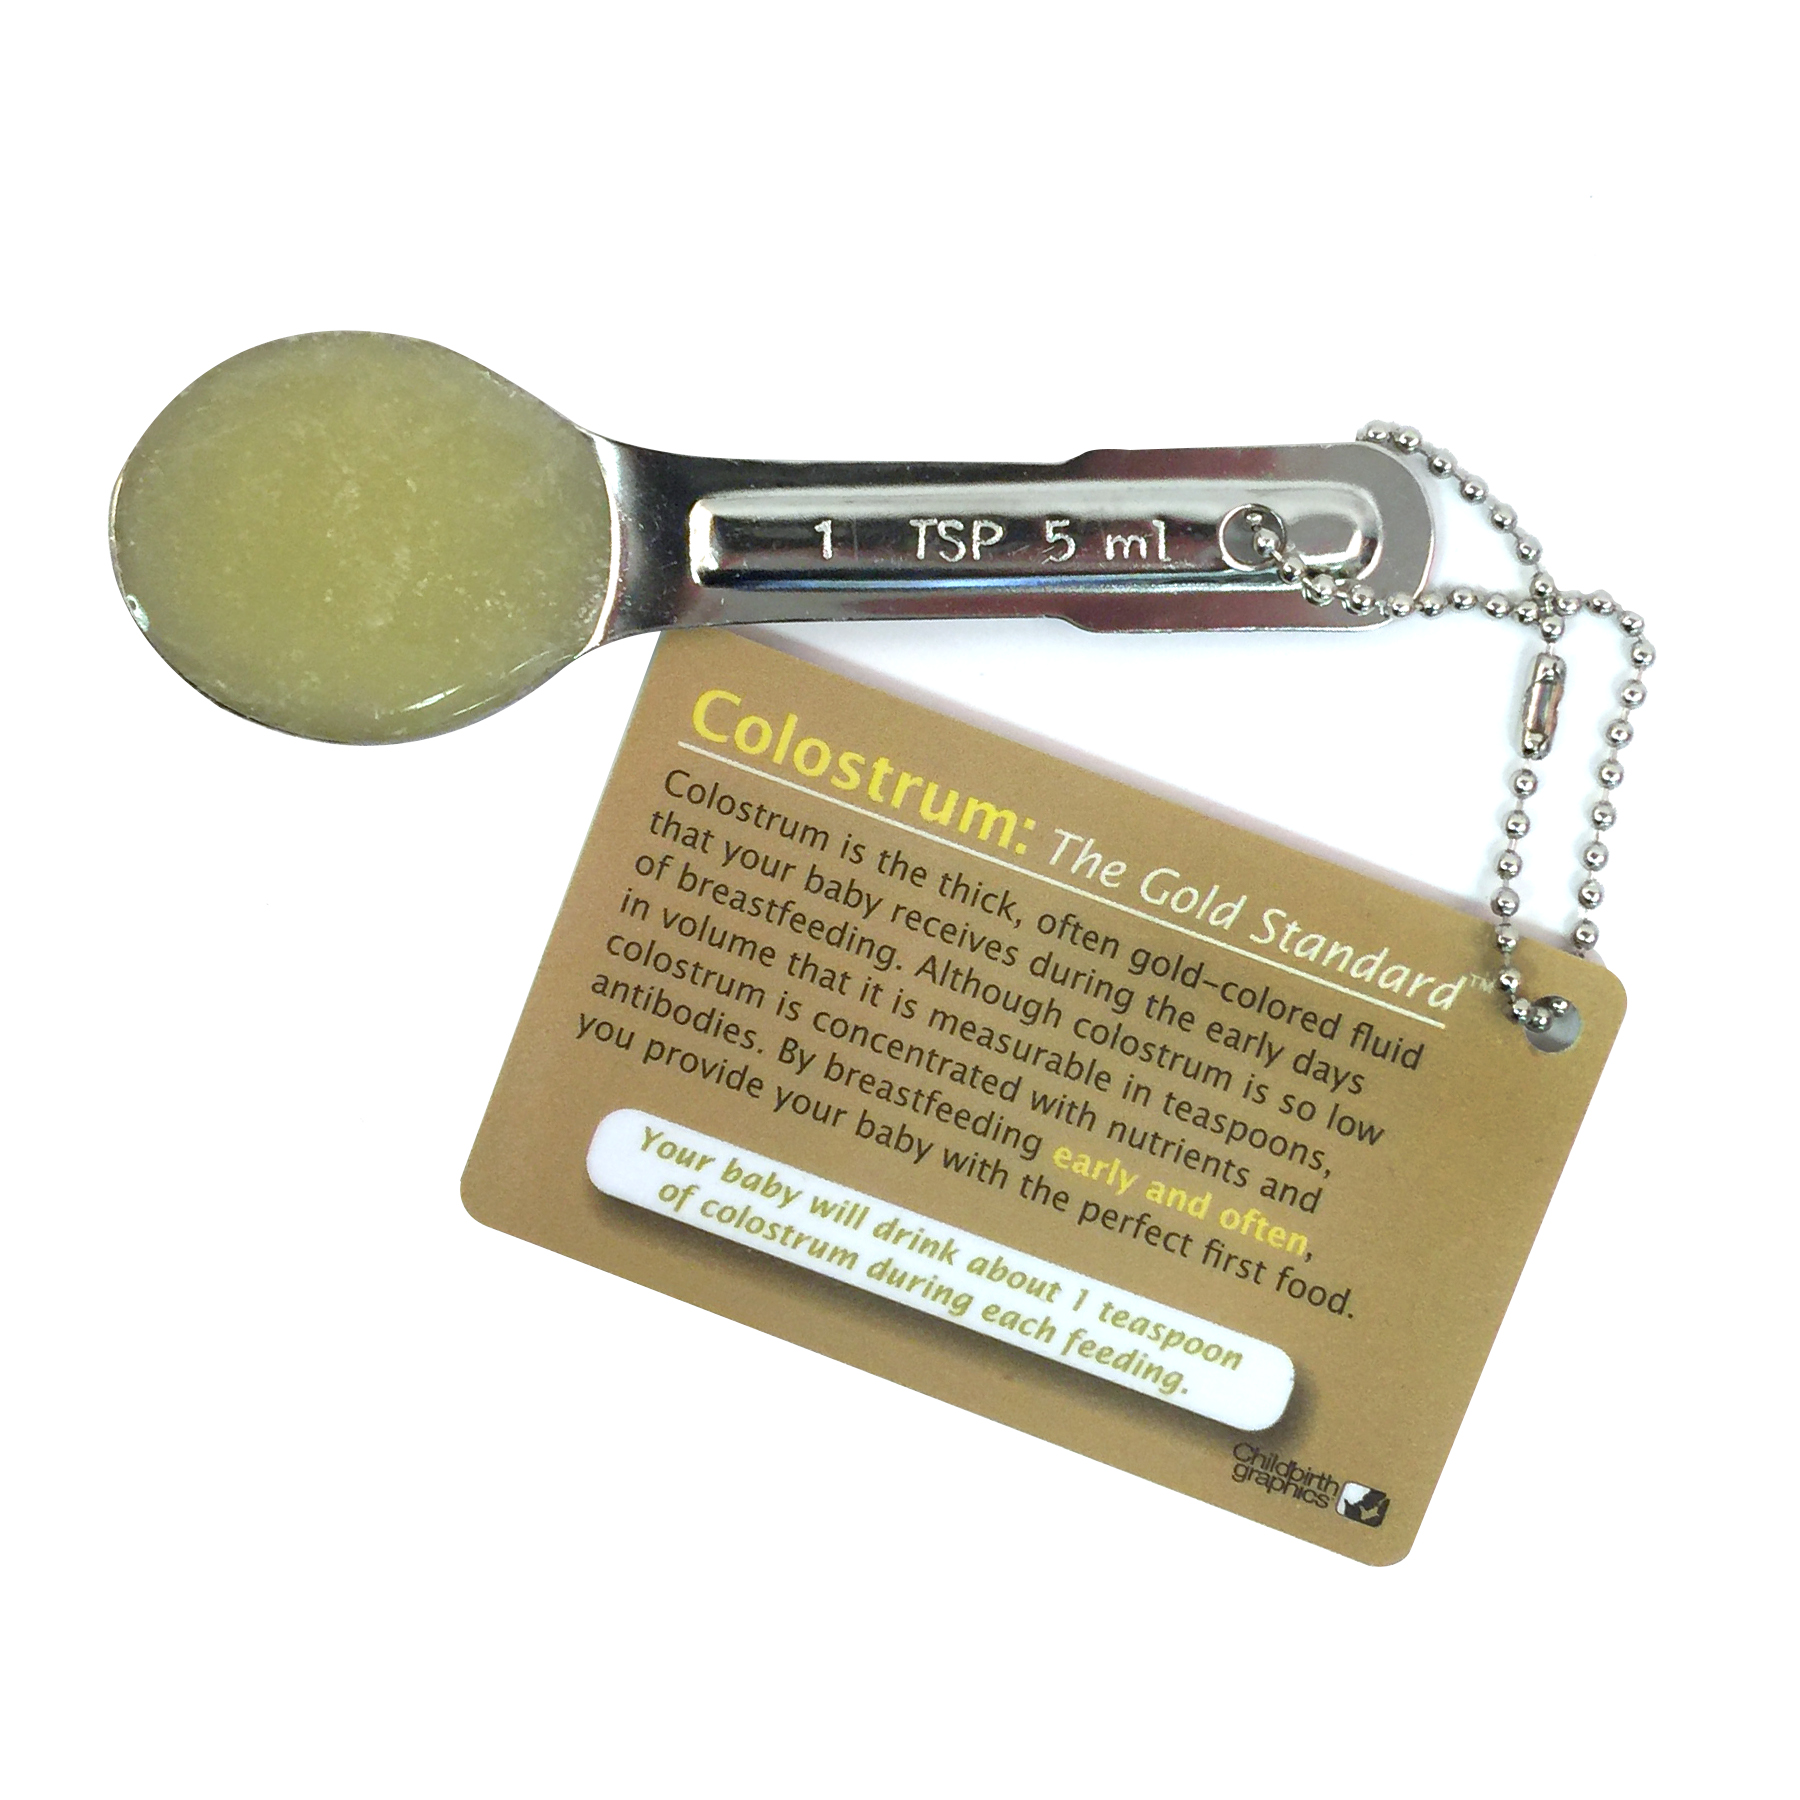 Colostrum: The Gold Standard Display for breastfeeding education from Childbirth Graphics with a teaspoon of colostrum, 85156